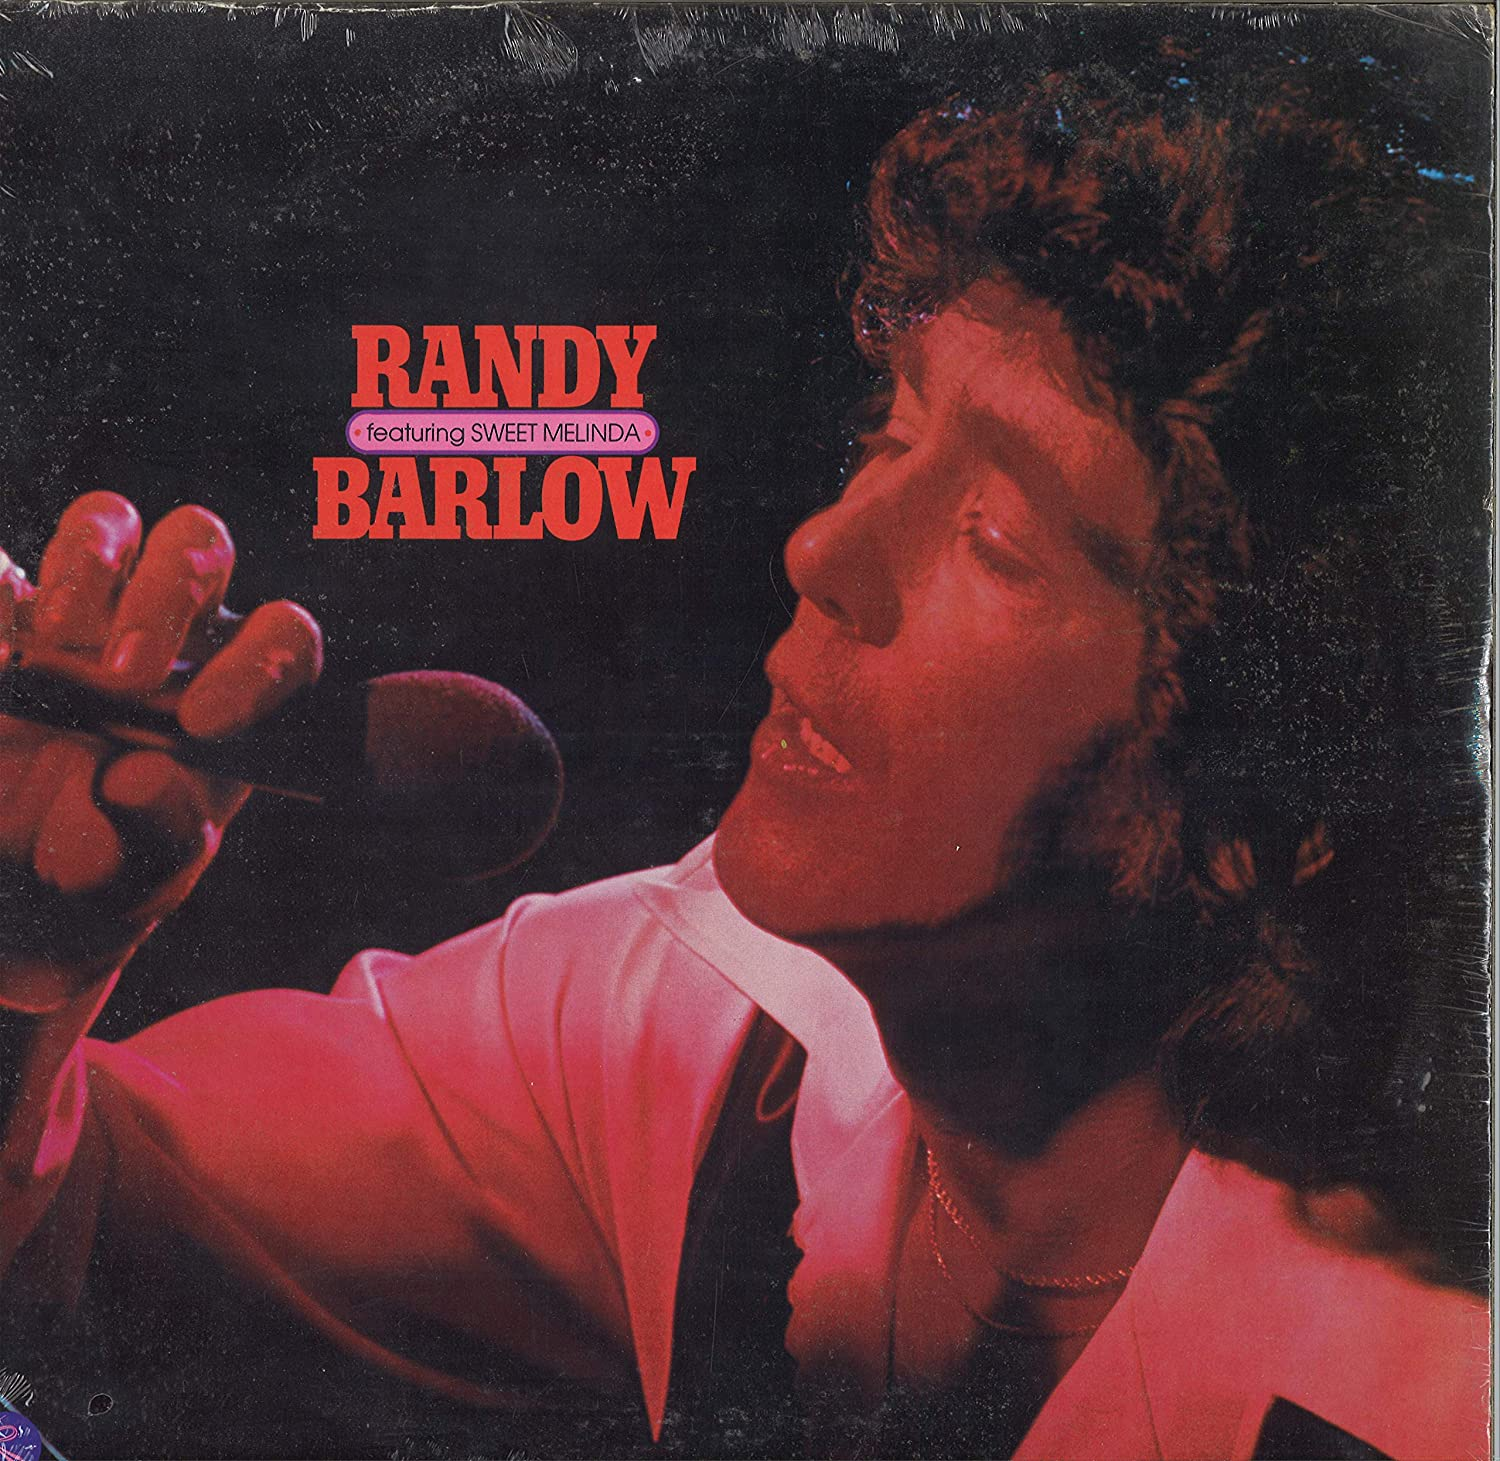 Randy Barlow - Featuring Sweet Melinda [LP VINYL] - Amazon